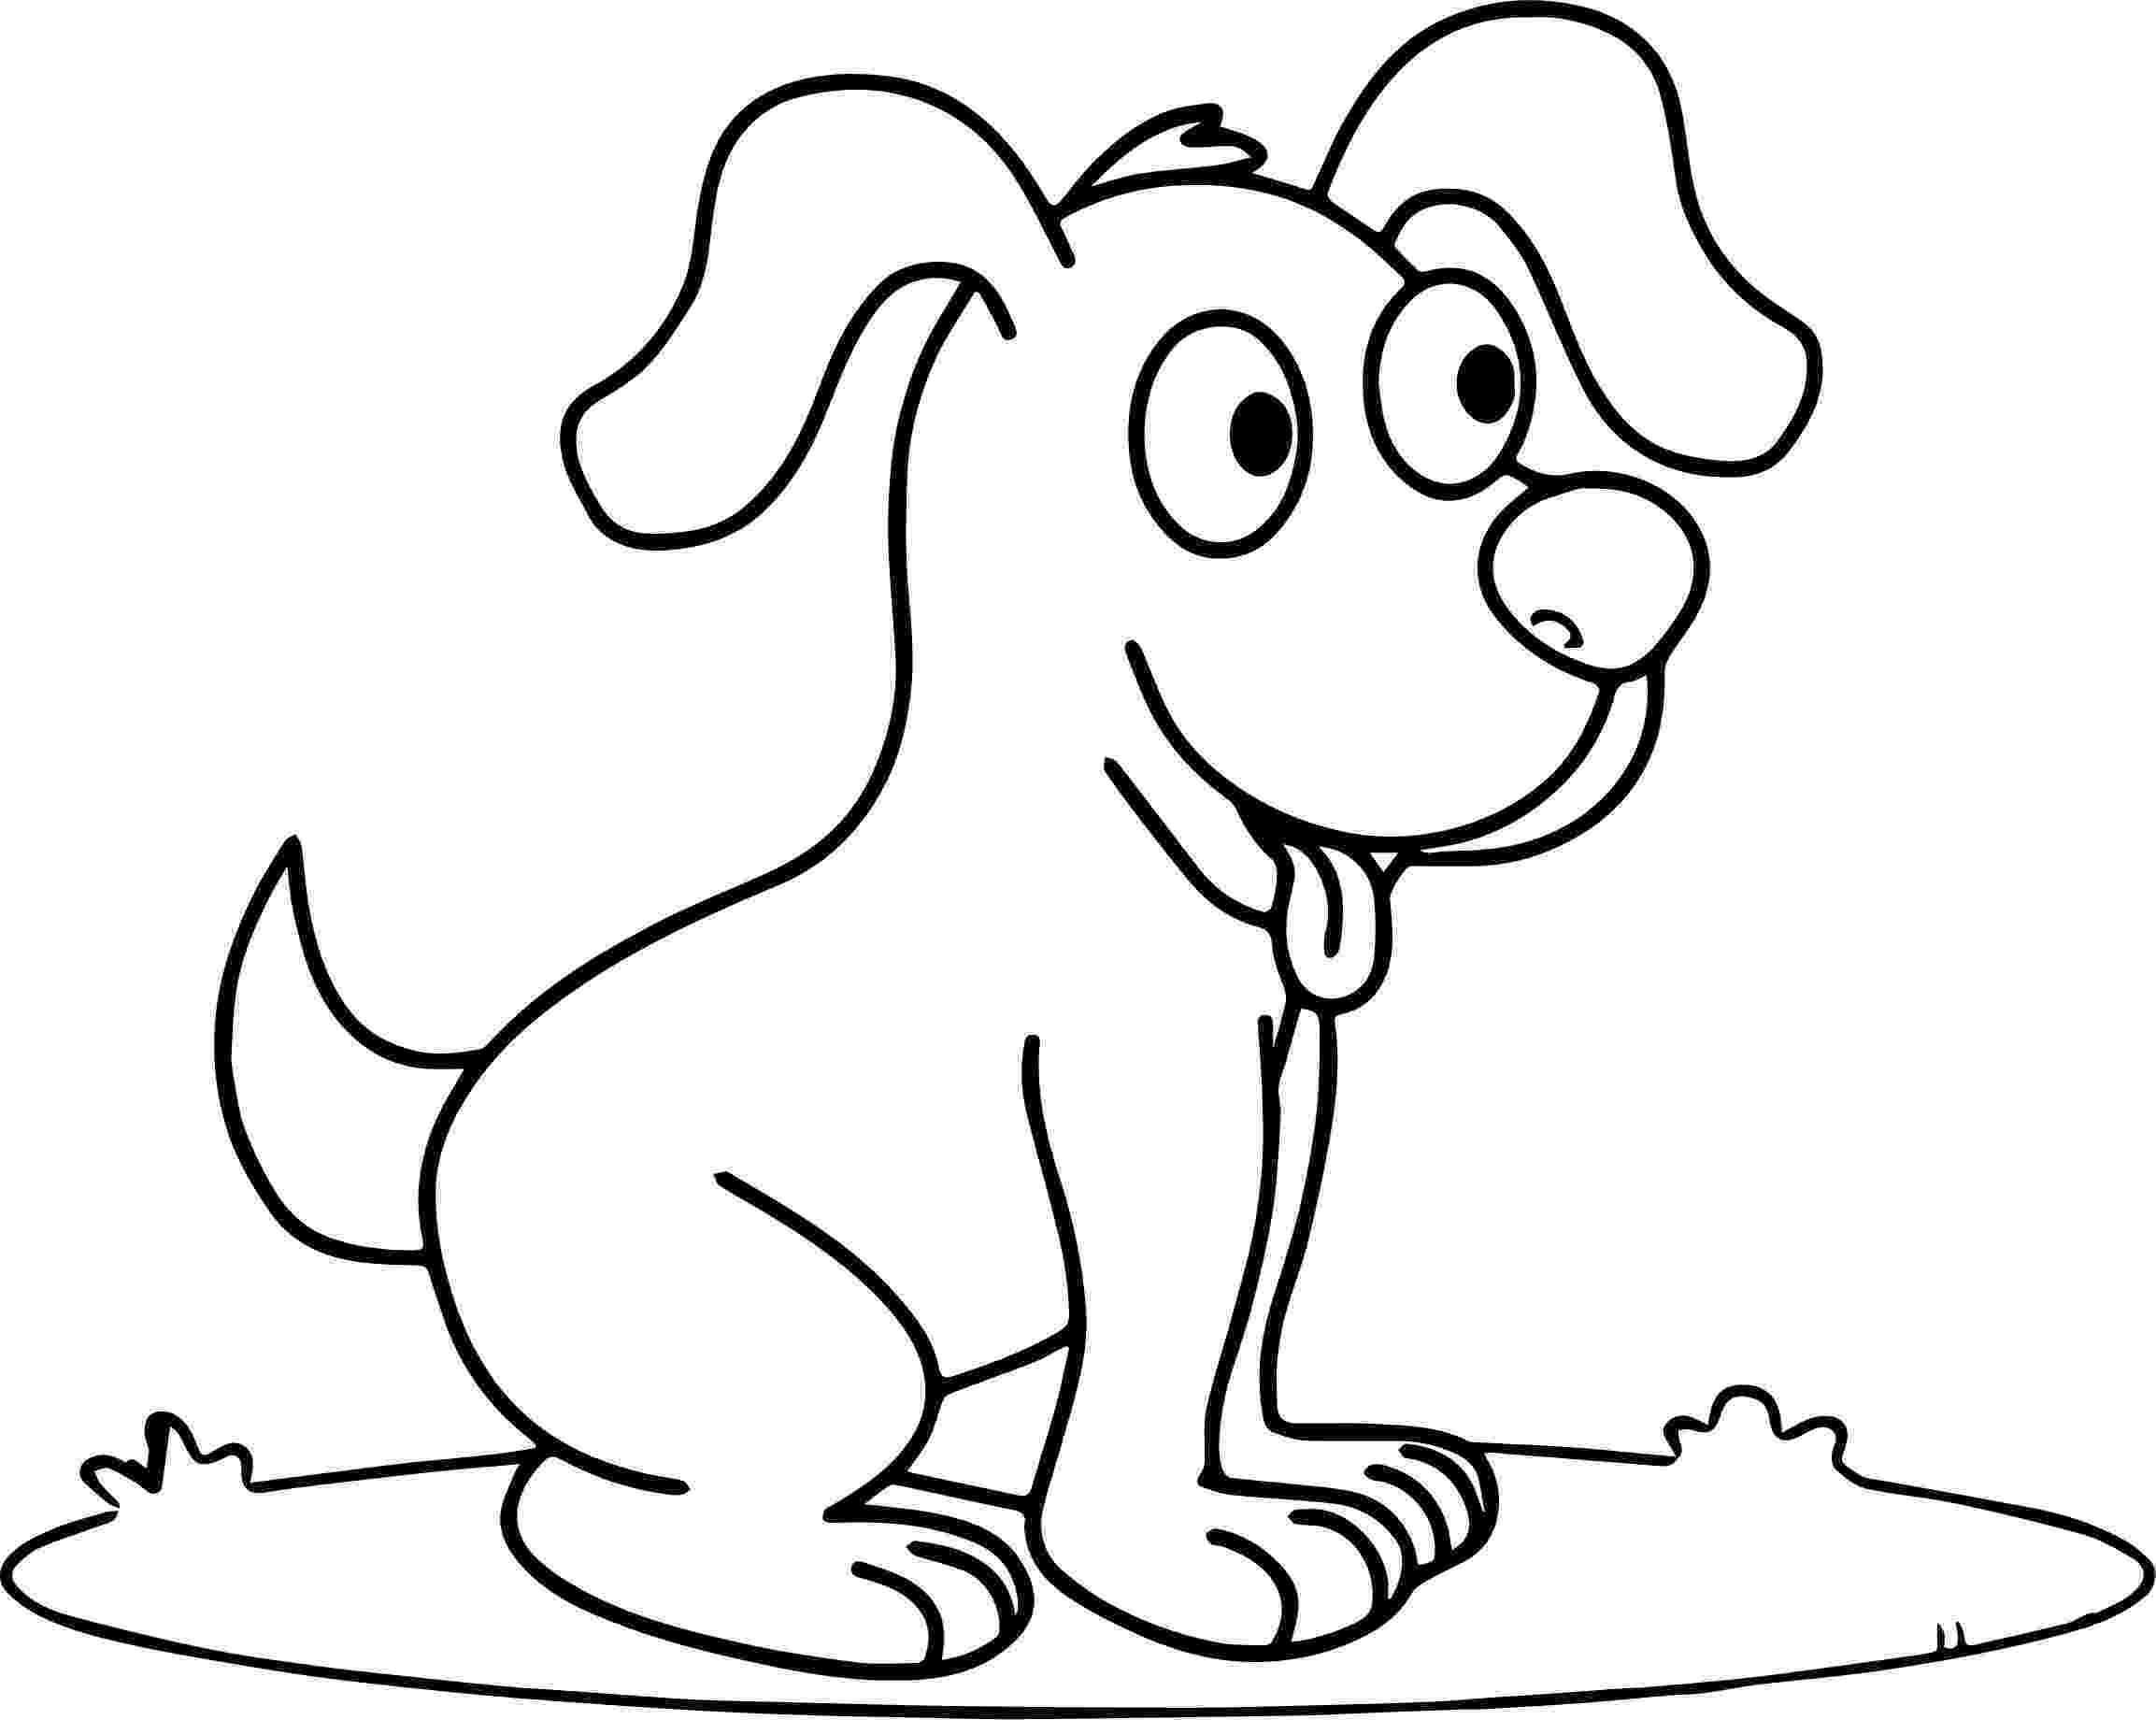 coloring picture of dog 9 puppy coloring pages jpg ai illustrator download of dog coloring picture